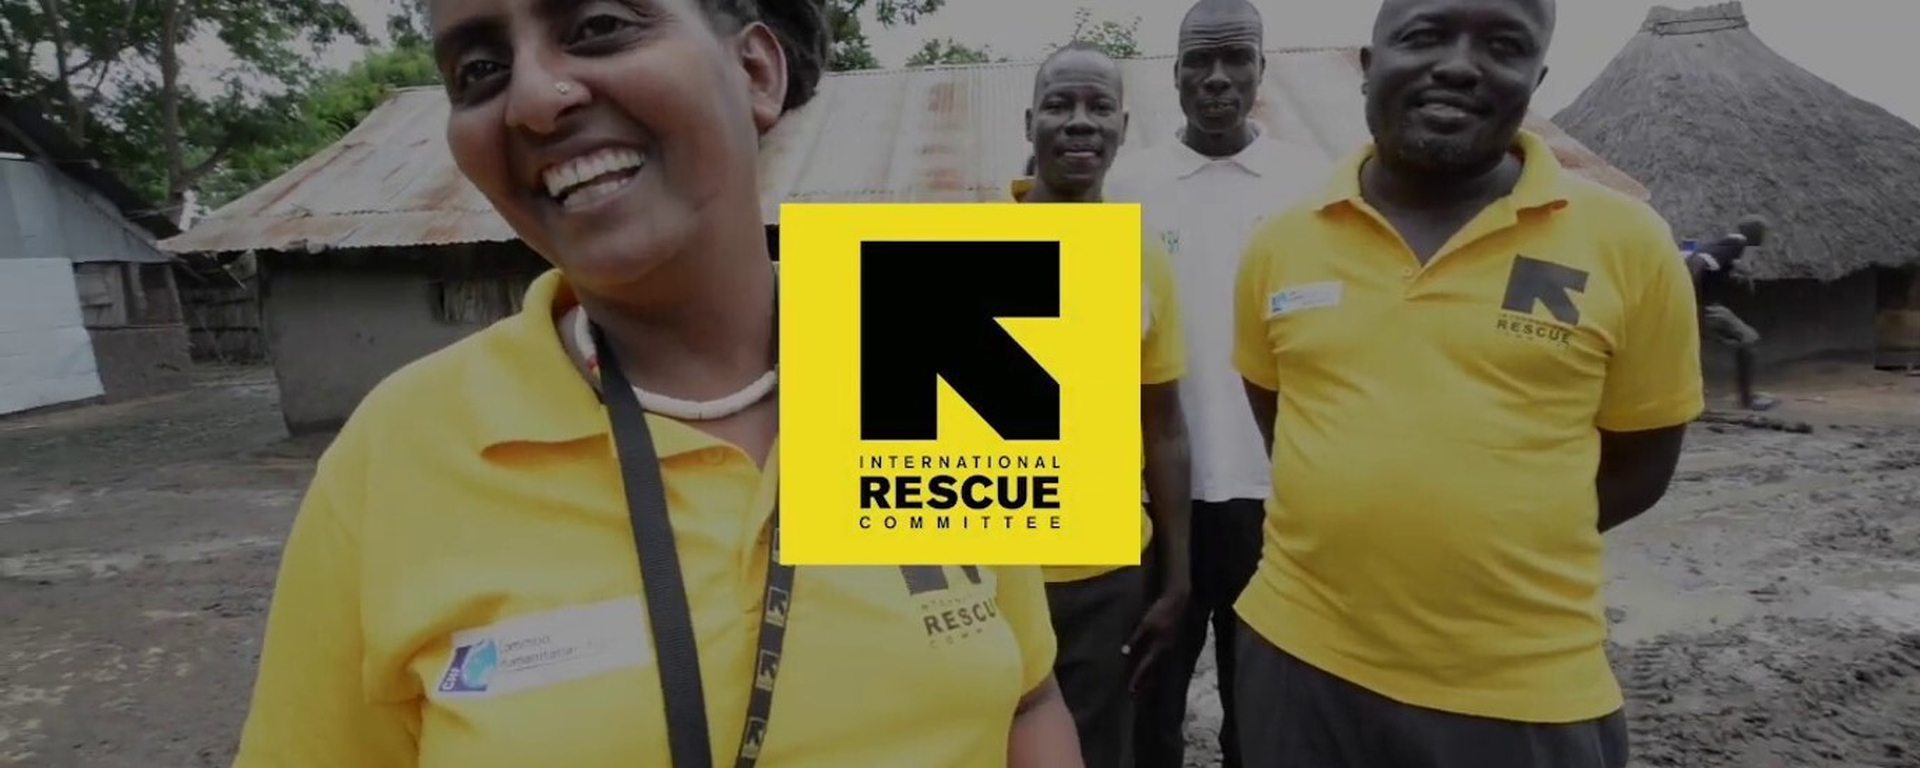 International Rescue Committee - Senior Investigator Movemeback African opportunity cover image